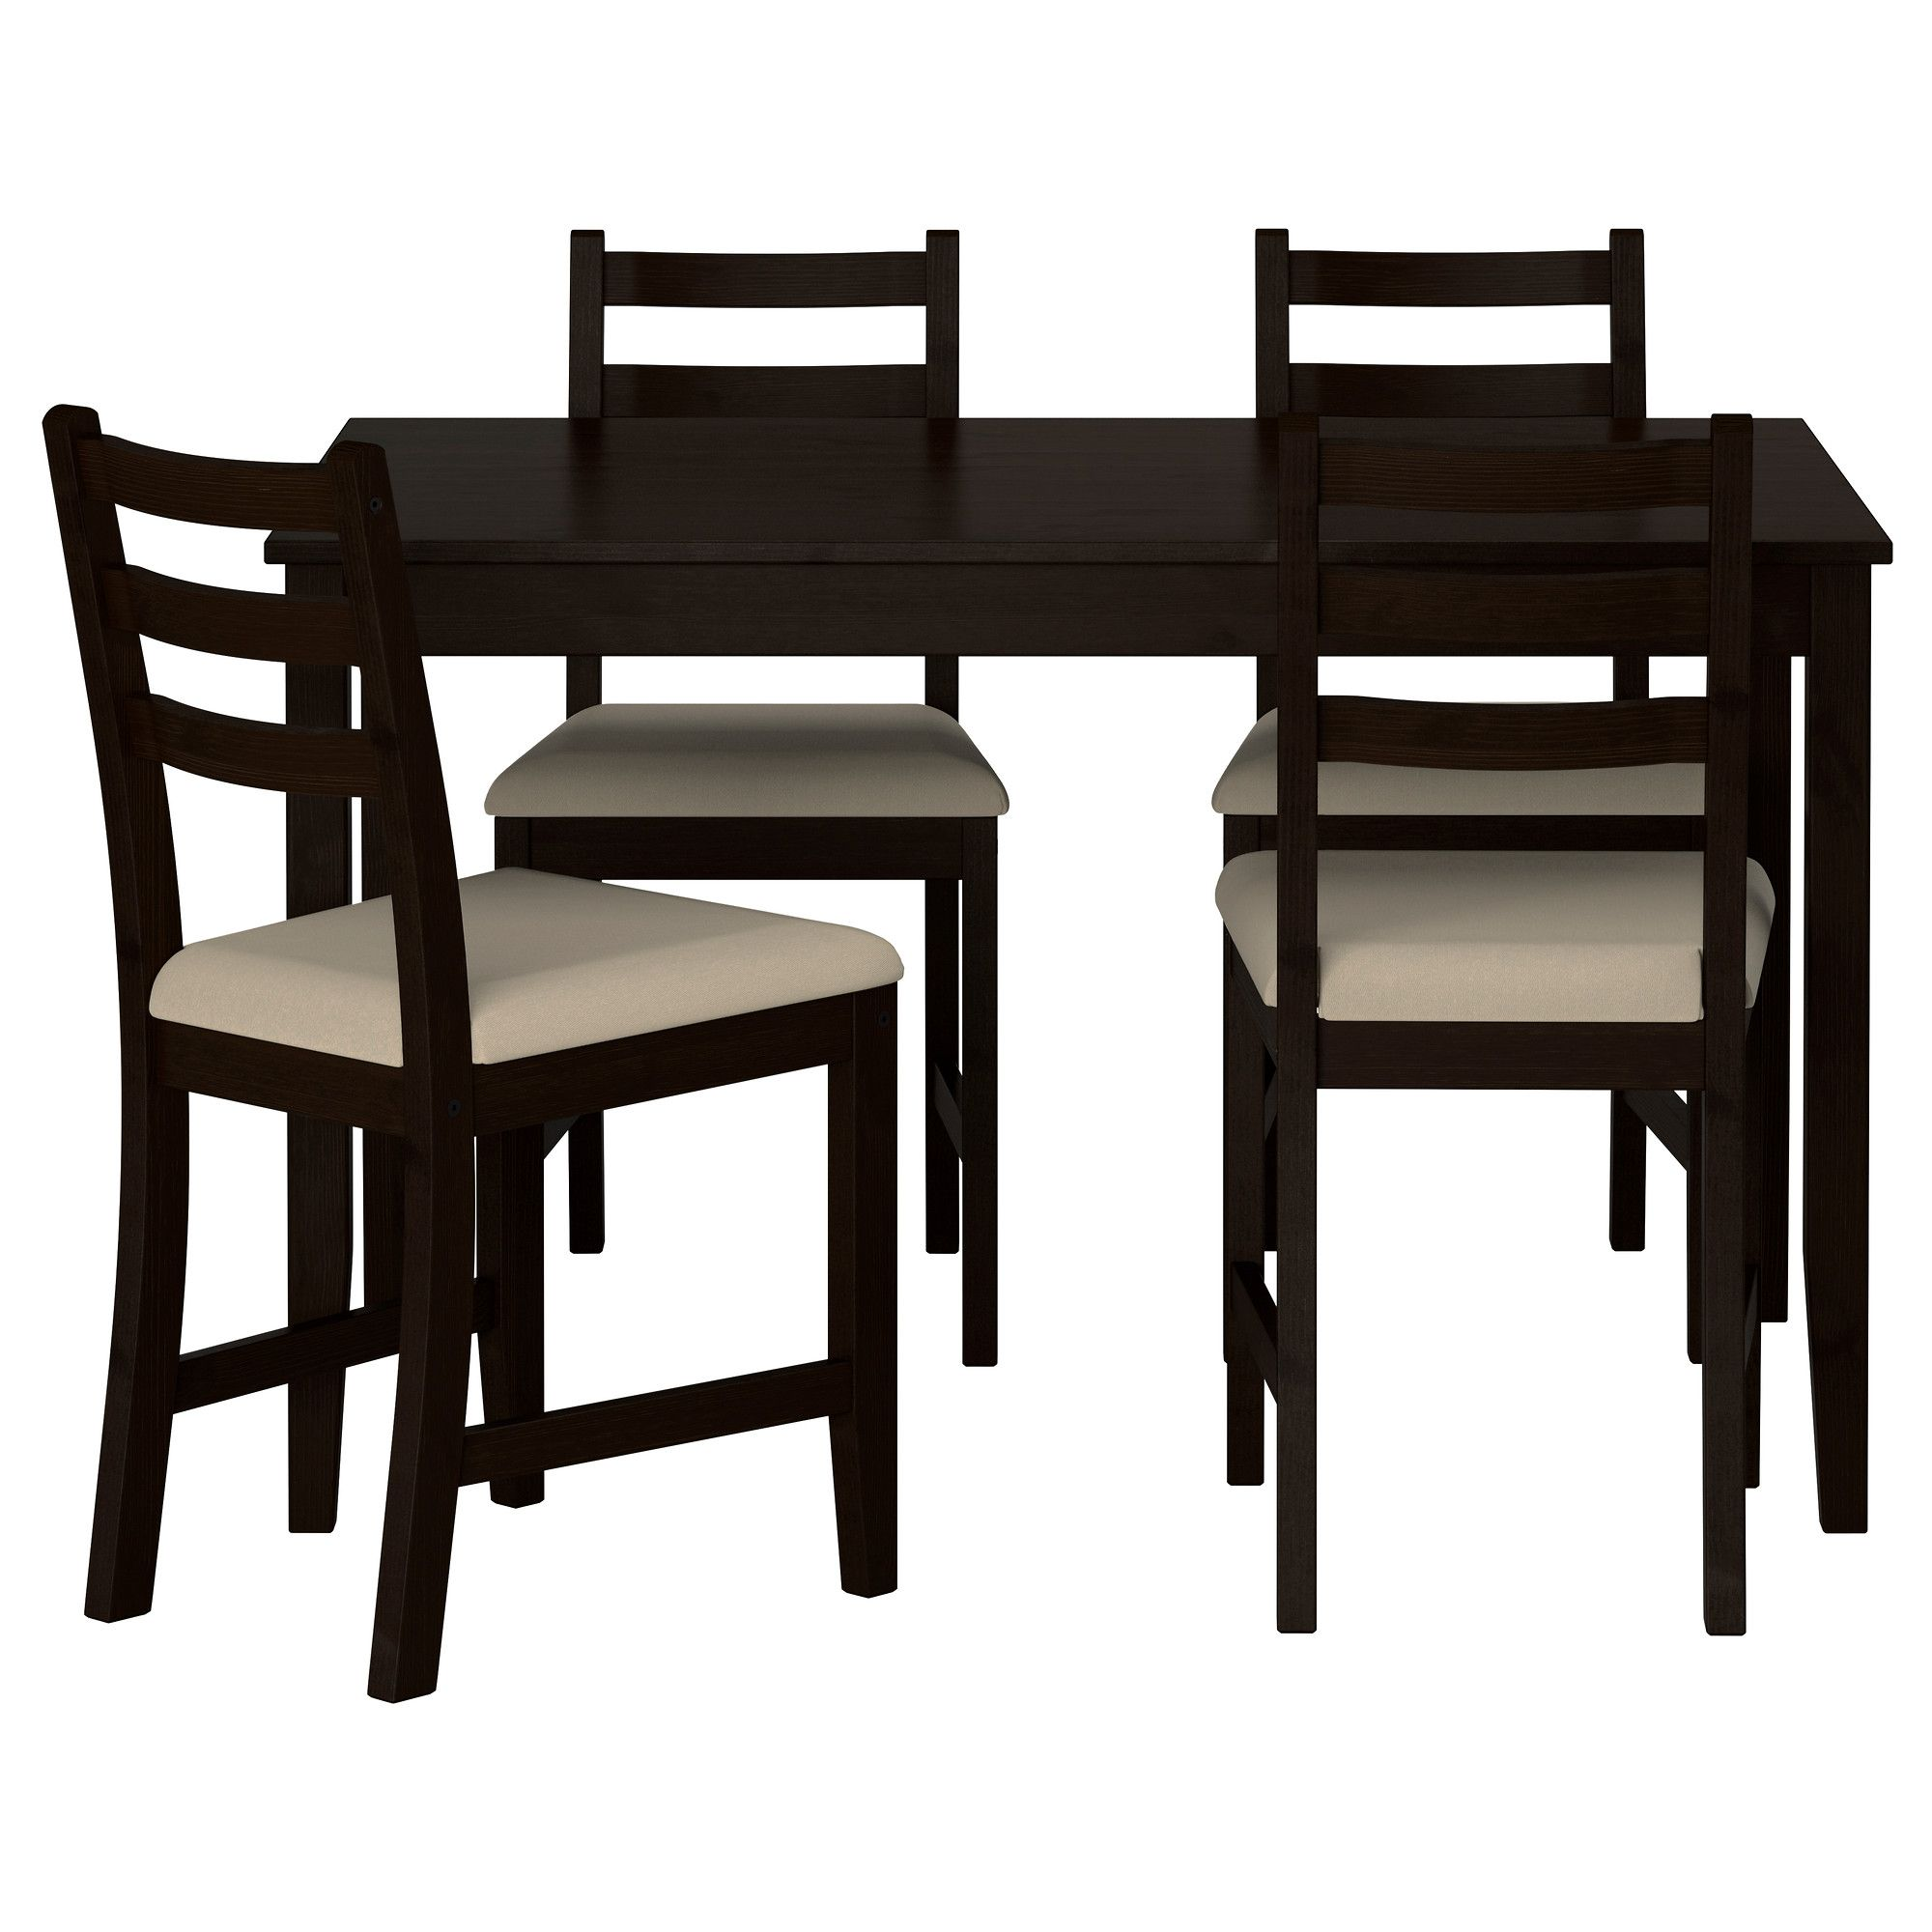 Lerhamn table and 4 chairs ikea 239